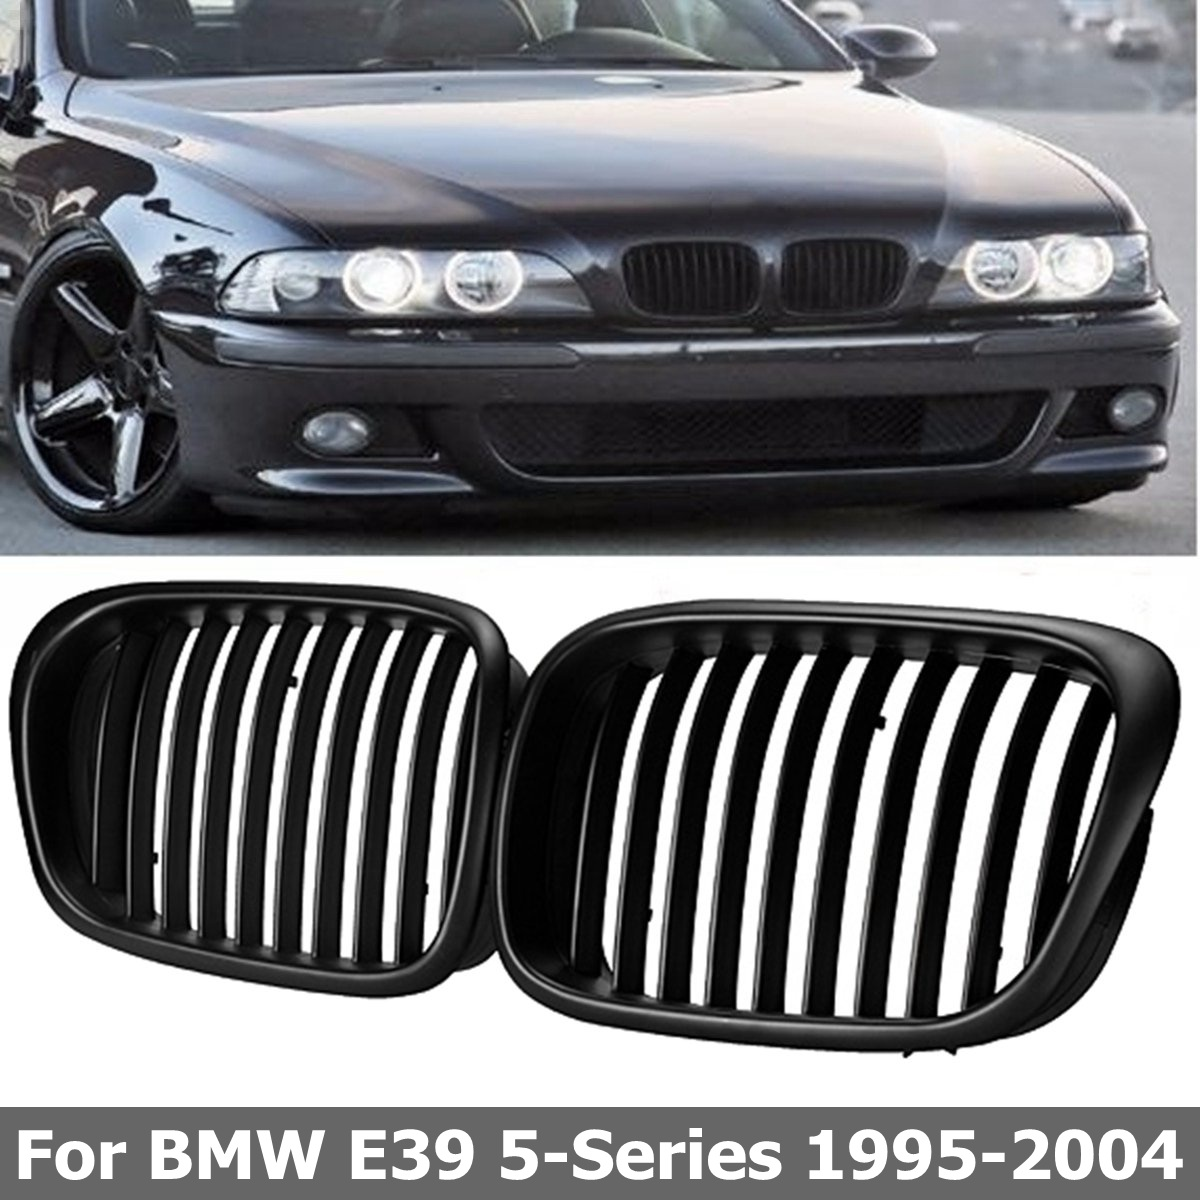 Plated Chrome Front Kidney Grill For BMW5 E39 1997,1998,1999,2000,2001,20022003